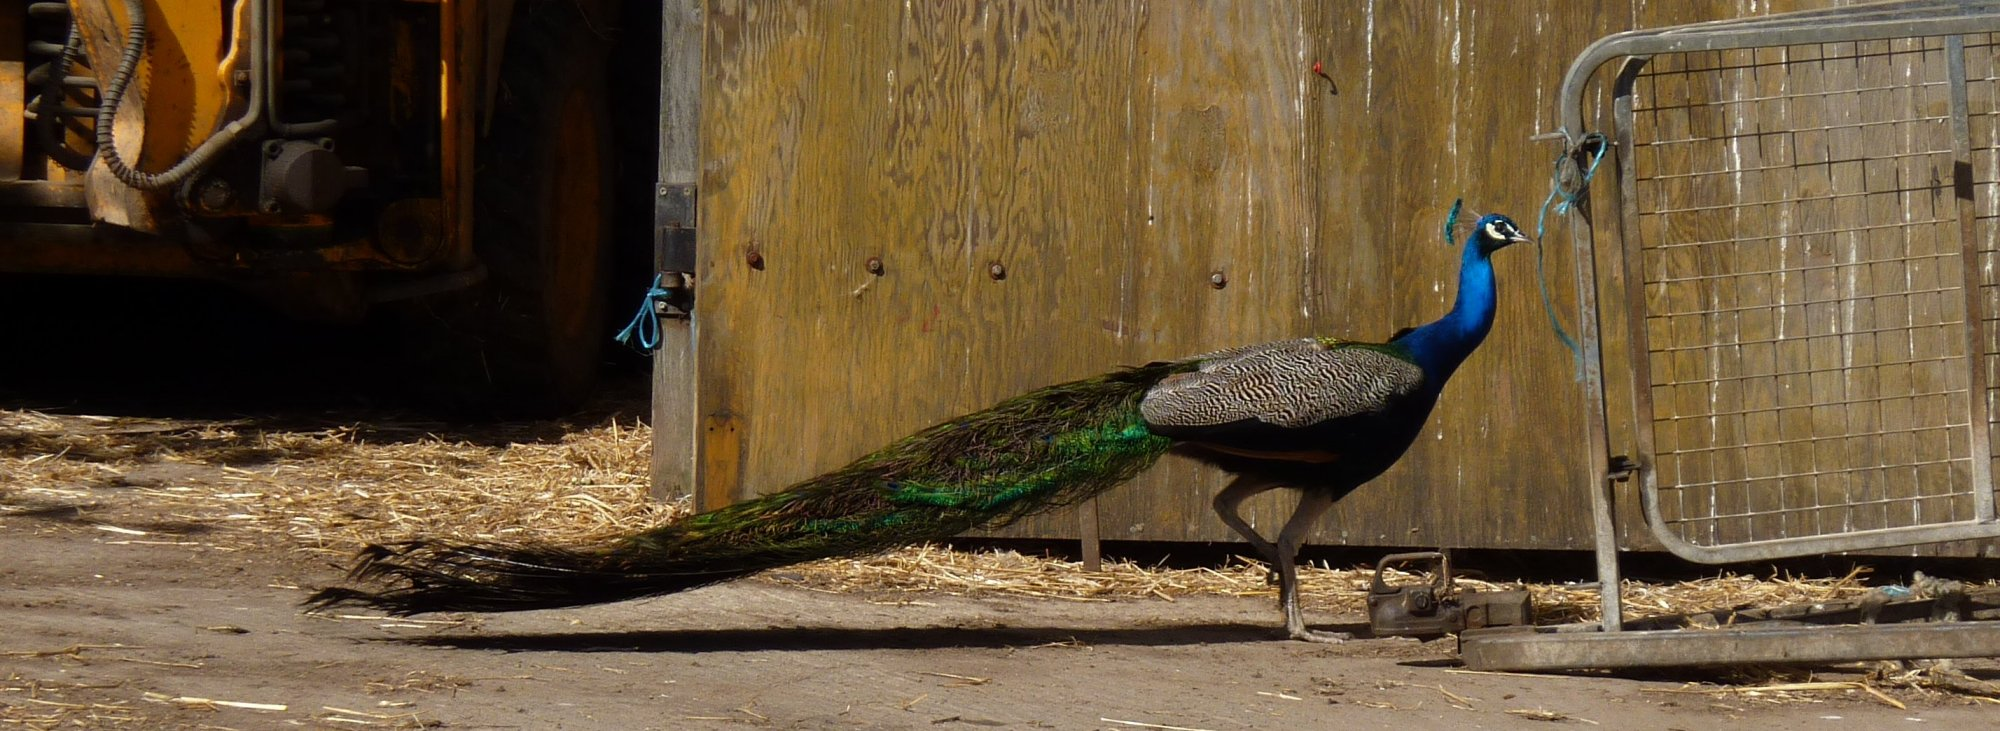 One of the many peacocks at Stoupebrow Cottage Farm